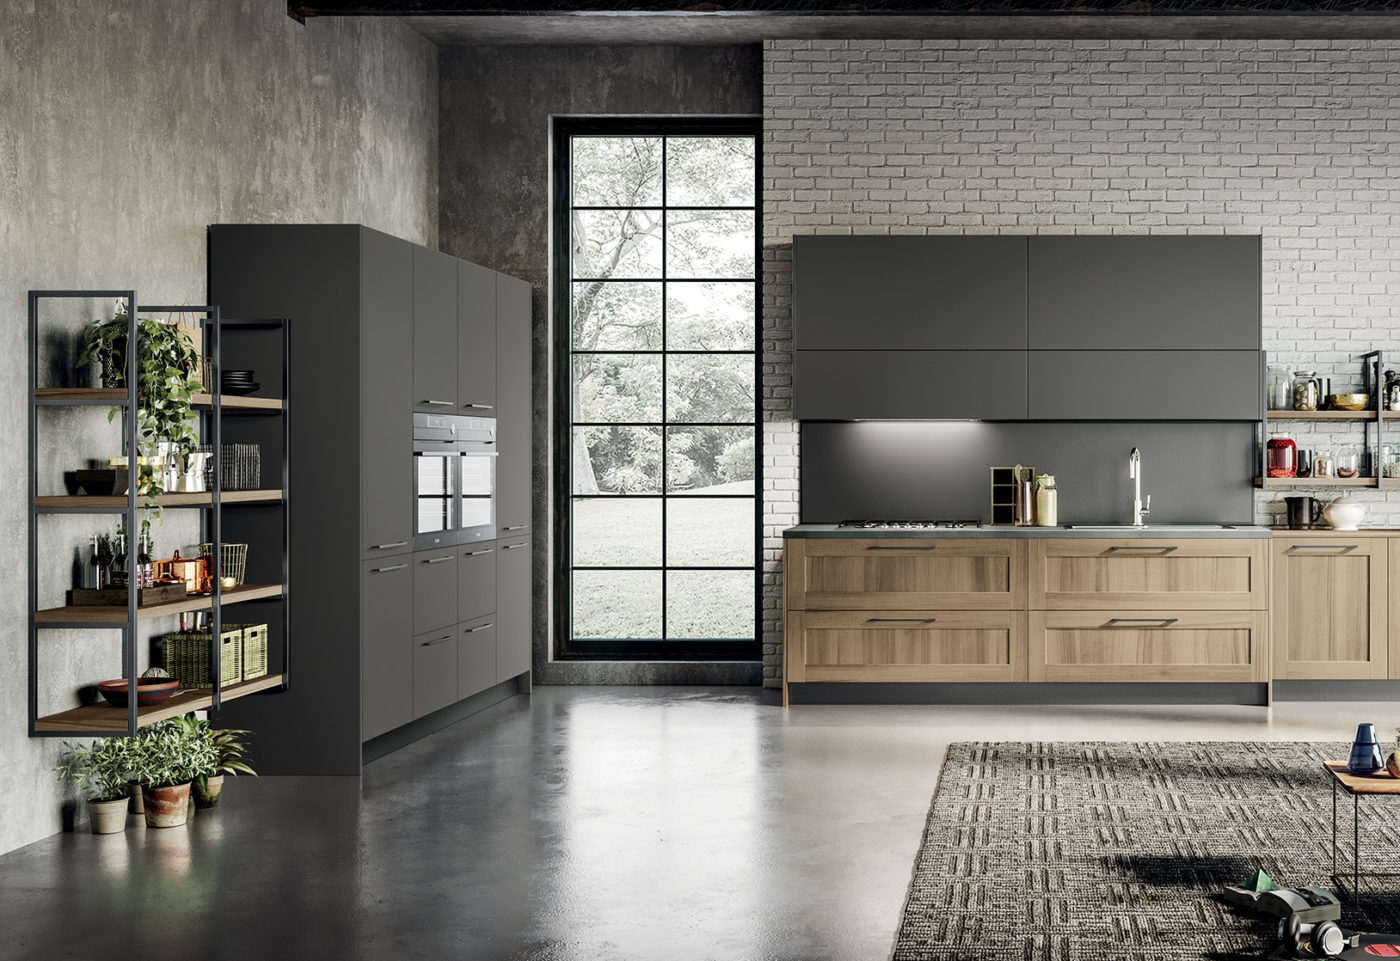 New finishes and compositions for Cloe by Arredo3, featuring versatility - 6